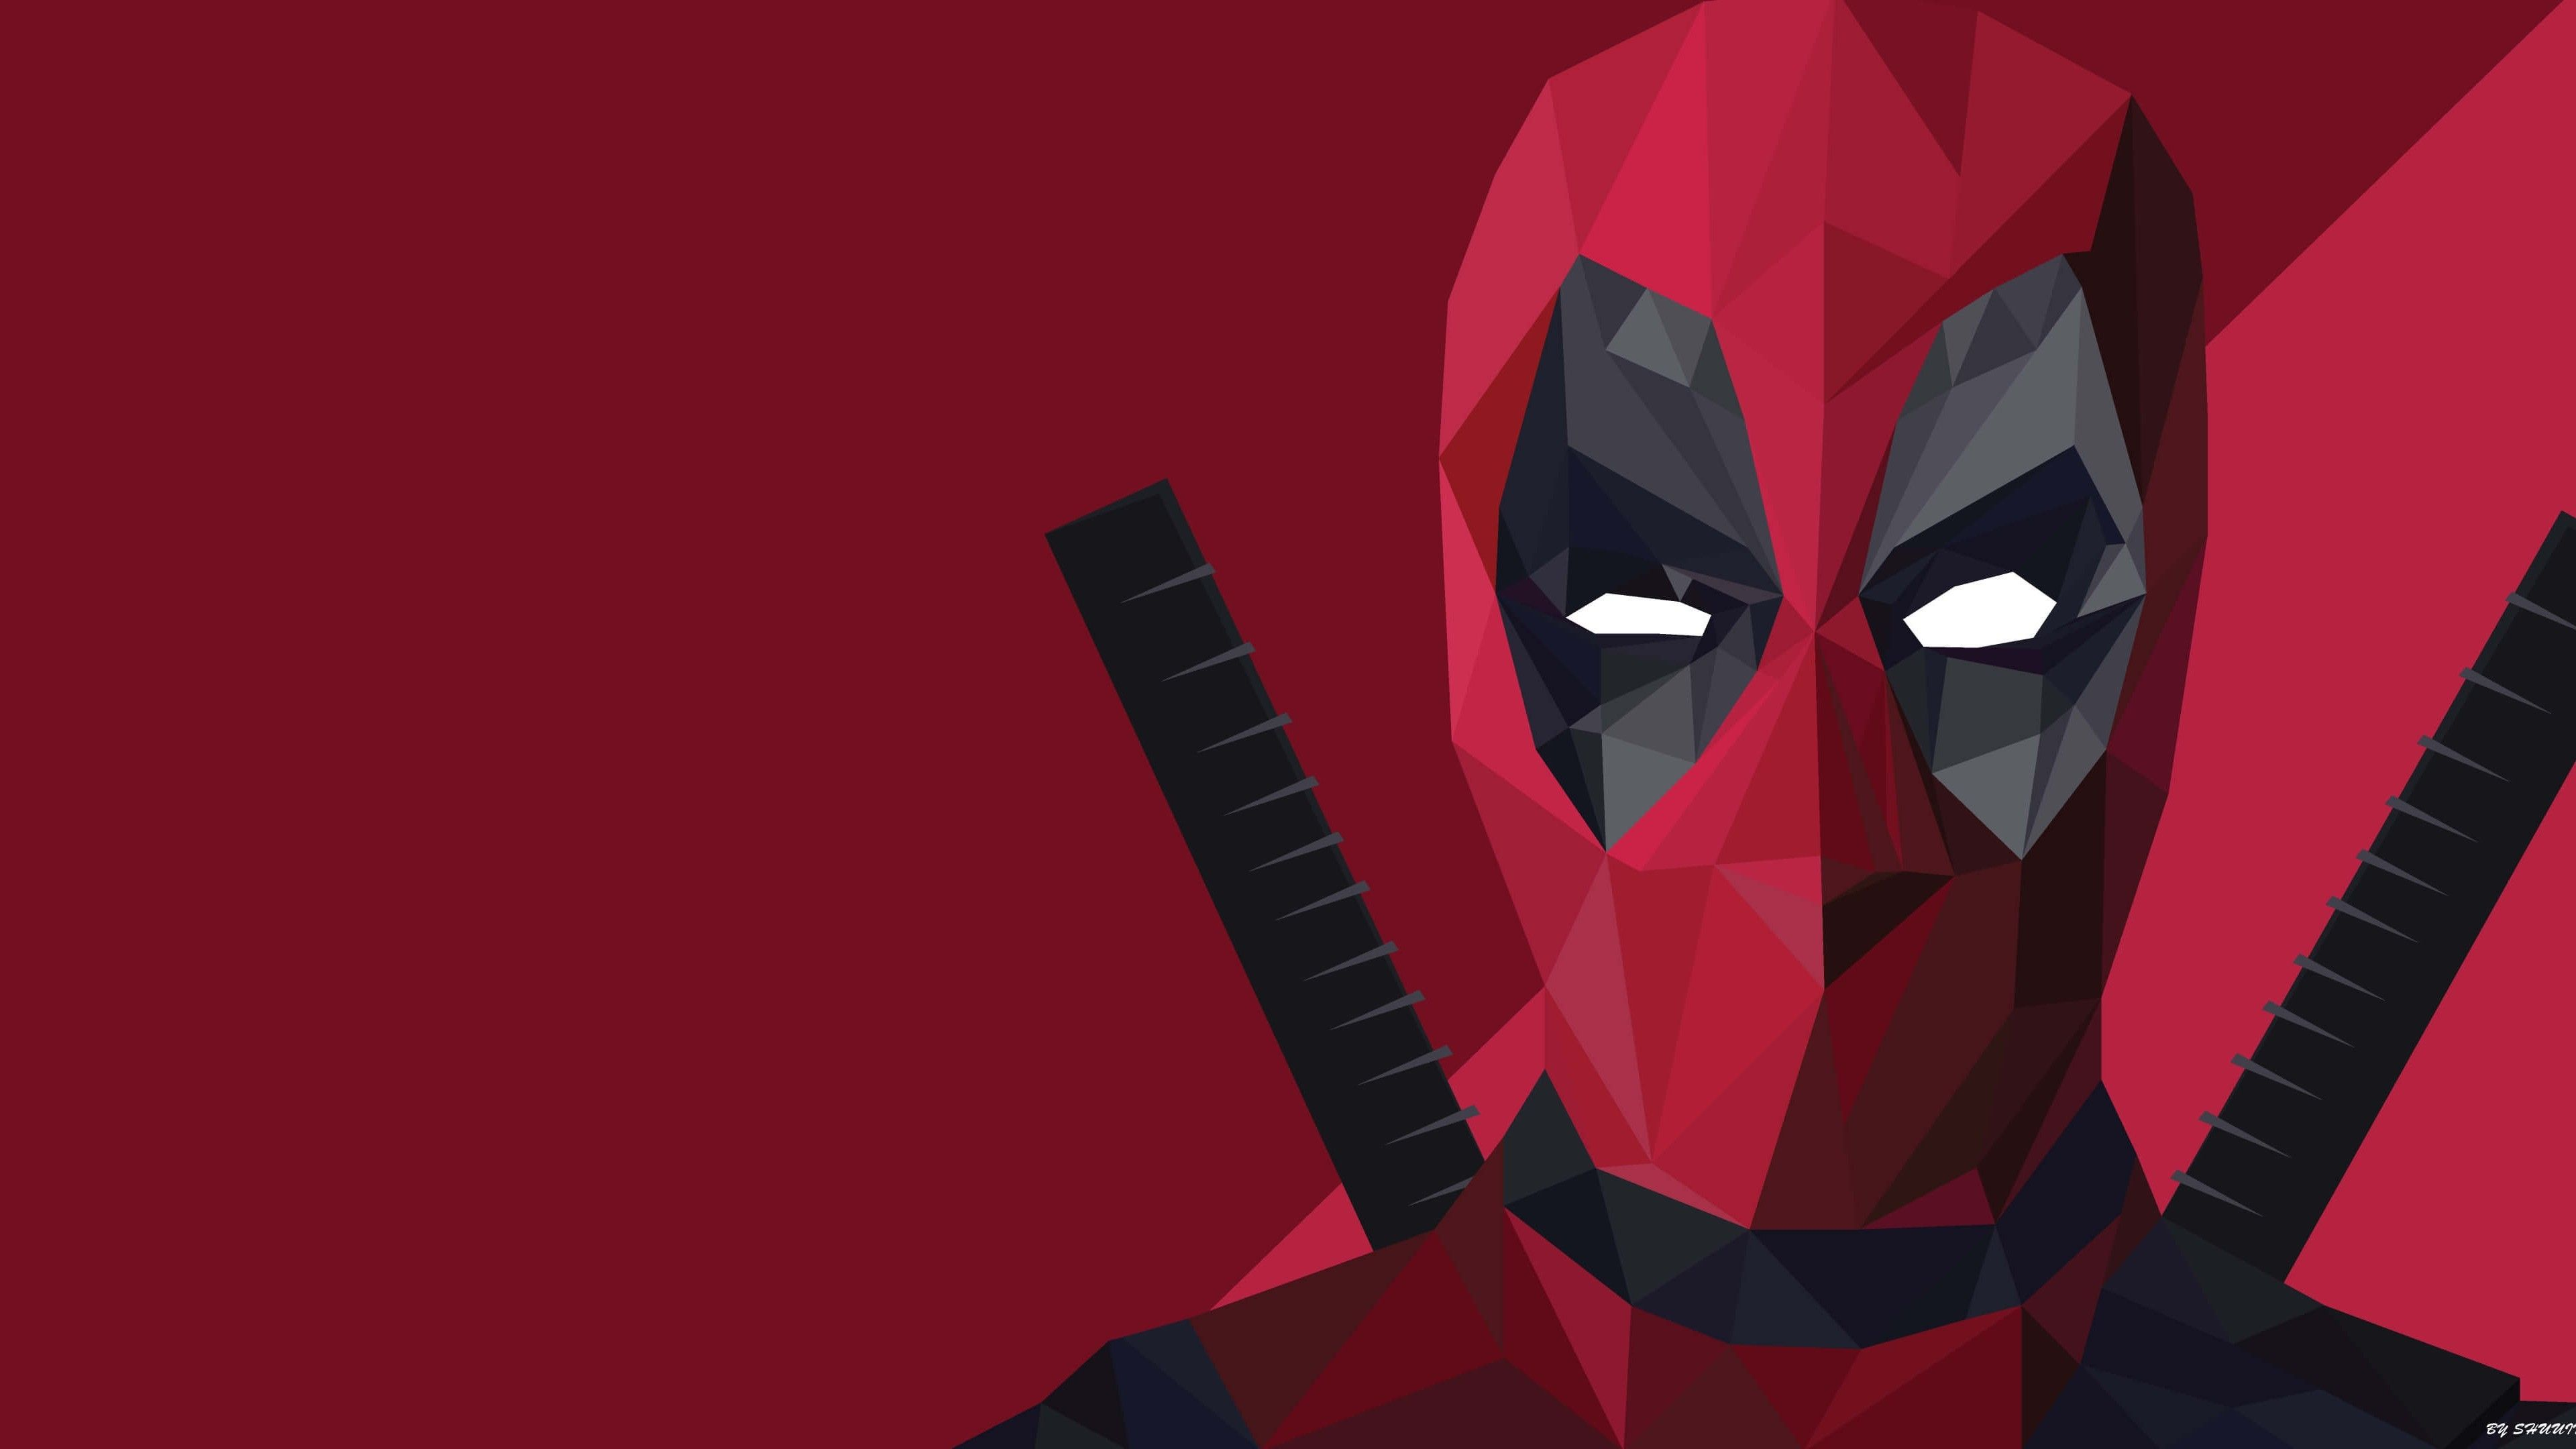 3840x2160 lowpolydeadpoolwallpaperbychuitochromecast